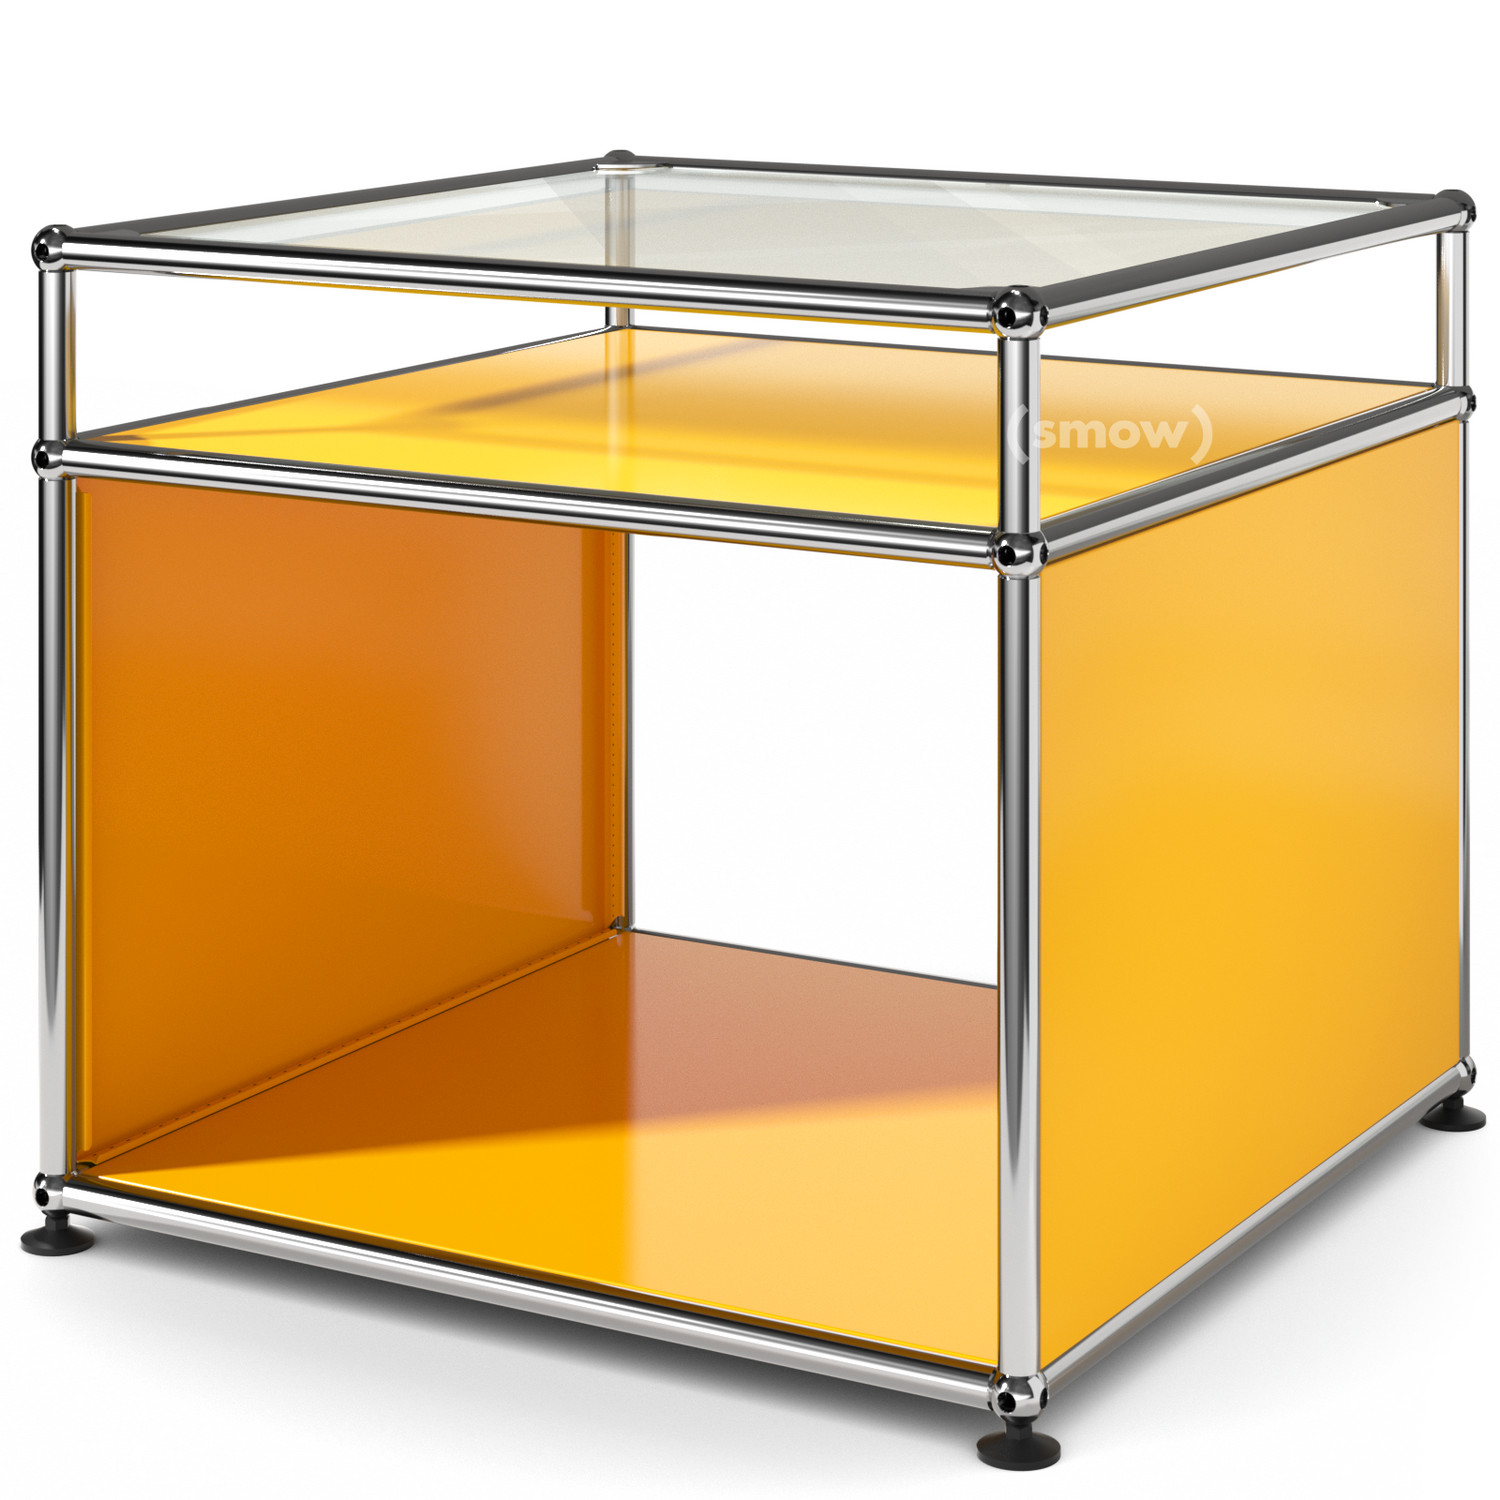 Usm haller side table with extension golden yellow ral 1004